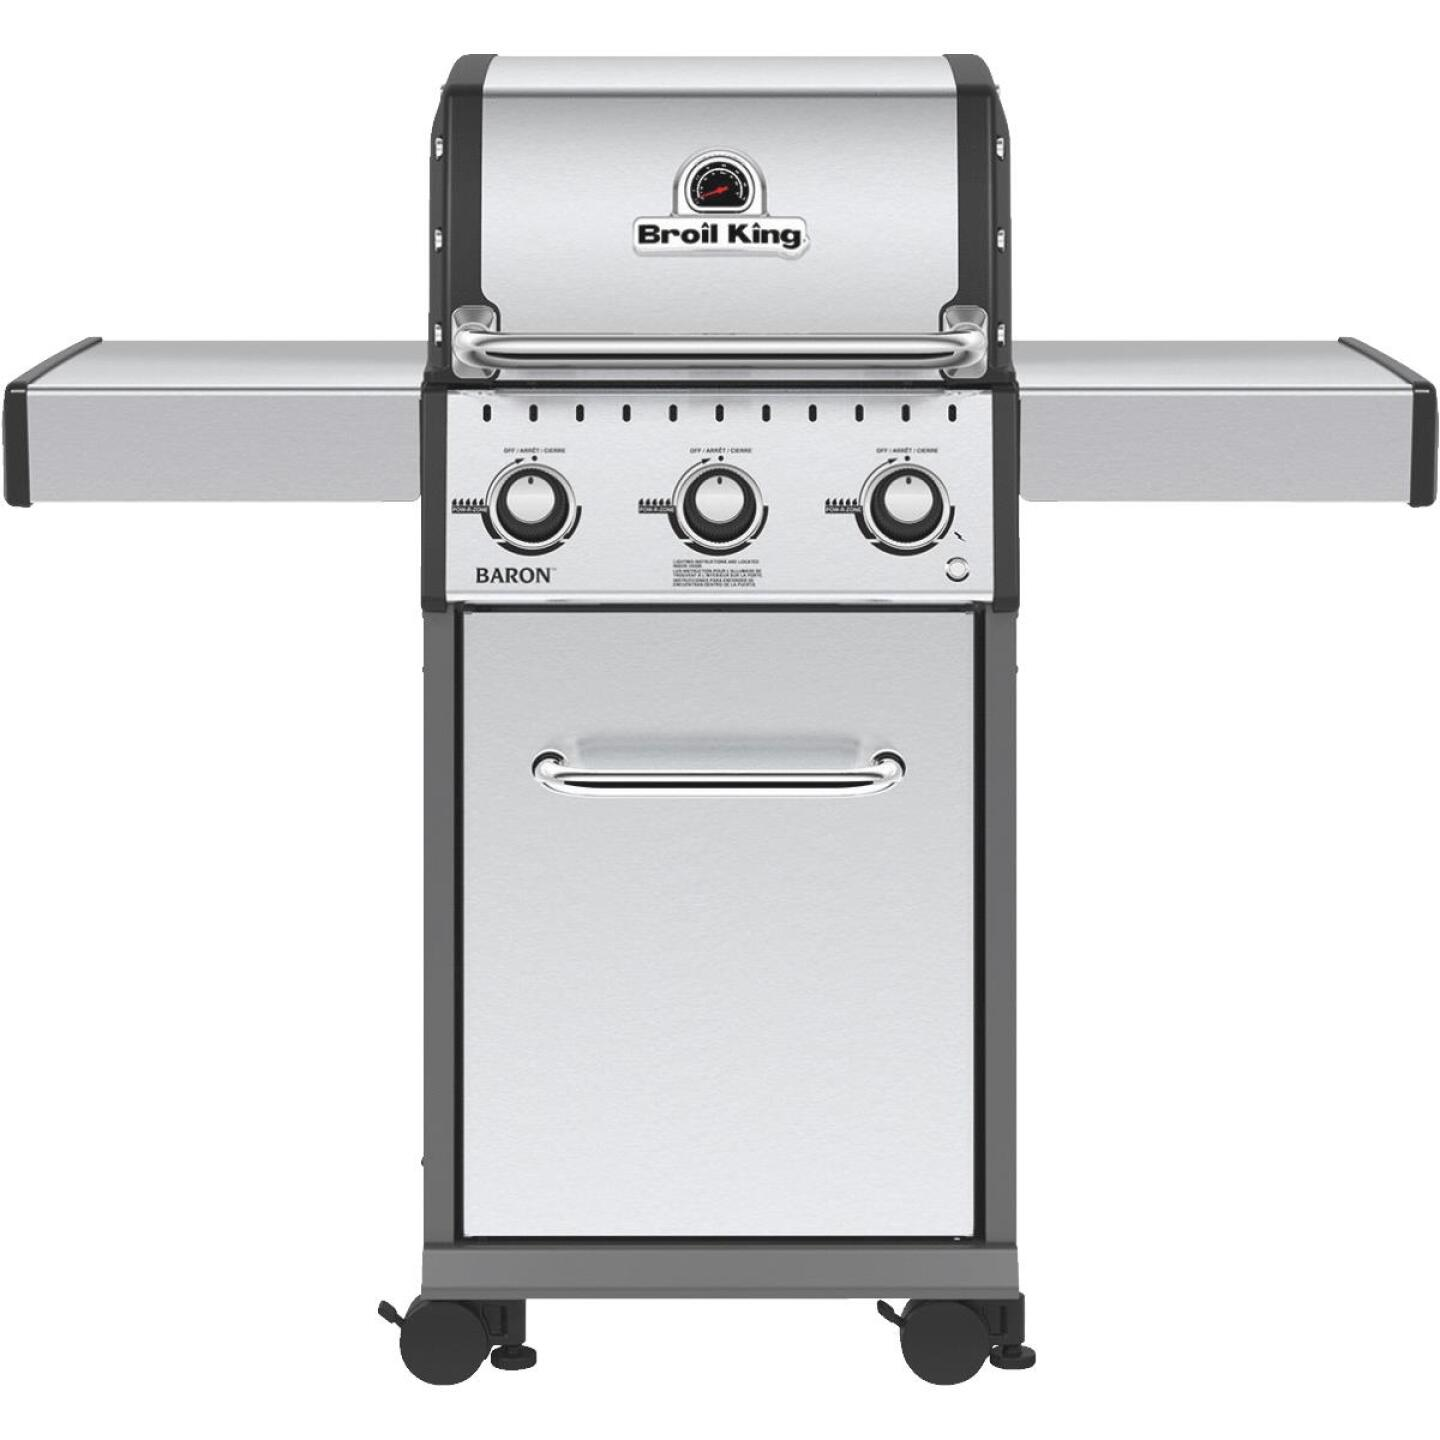 Broil King Baron S320 3-Burner Stainless Steel 30,000-BTU LP Gas Grill Image 1